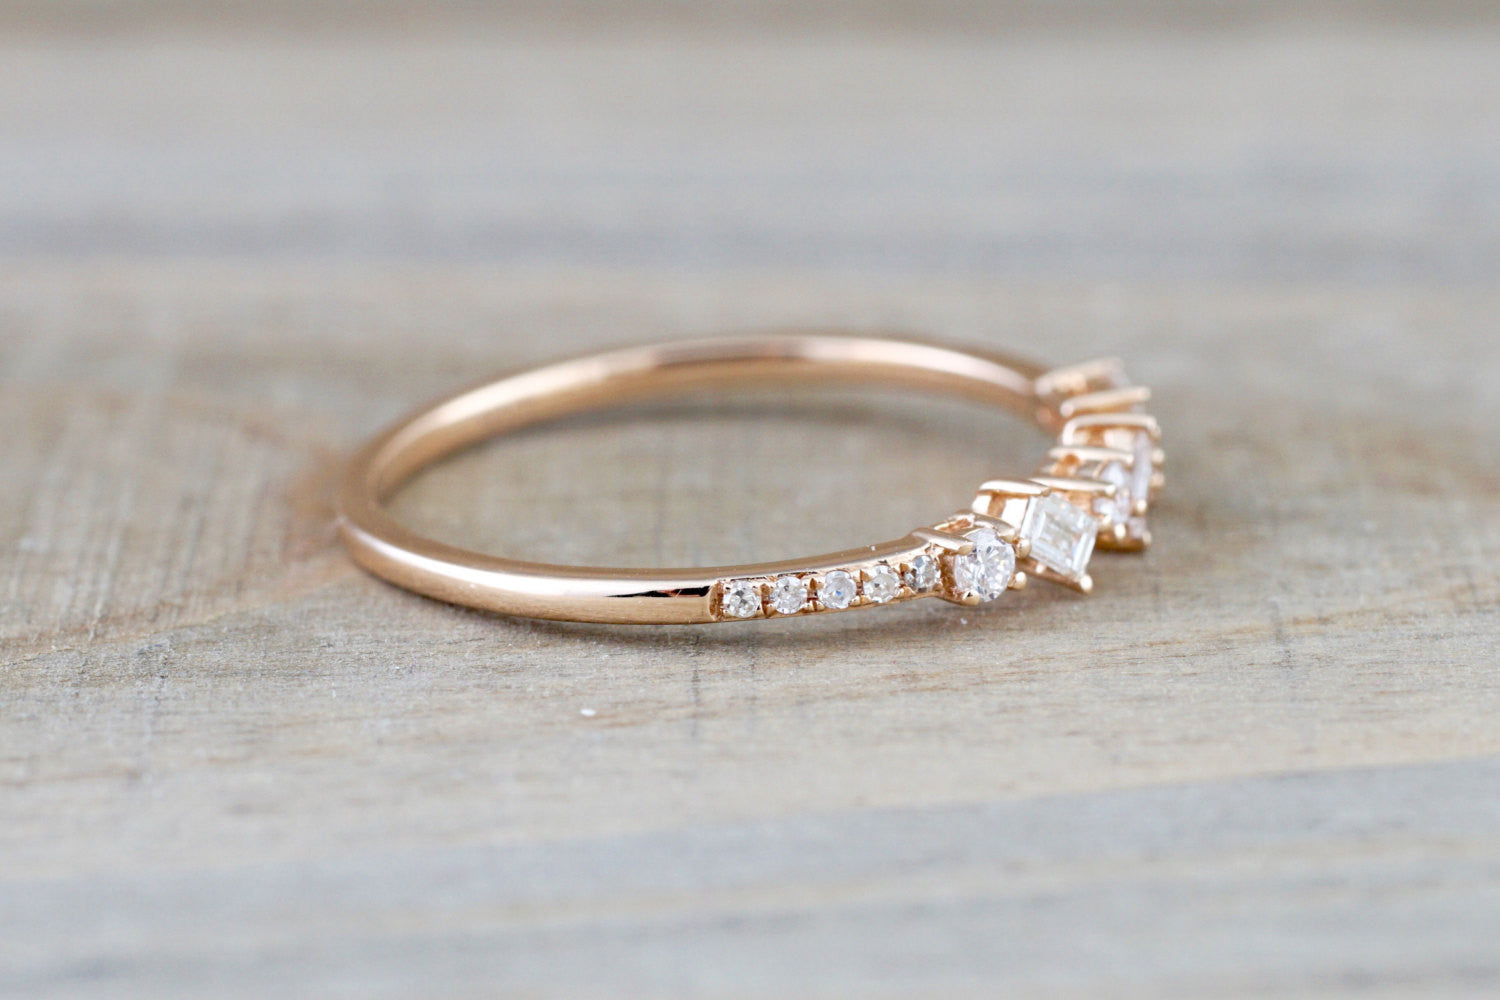 14k Rose Gold Dainty Baguette Cut Rectangle Diamond Band Stackable Design Classic Twist - Brilliant Facets